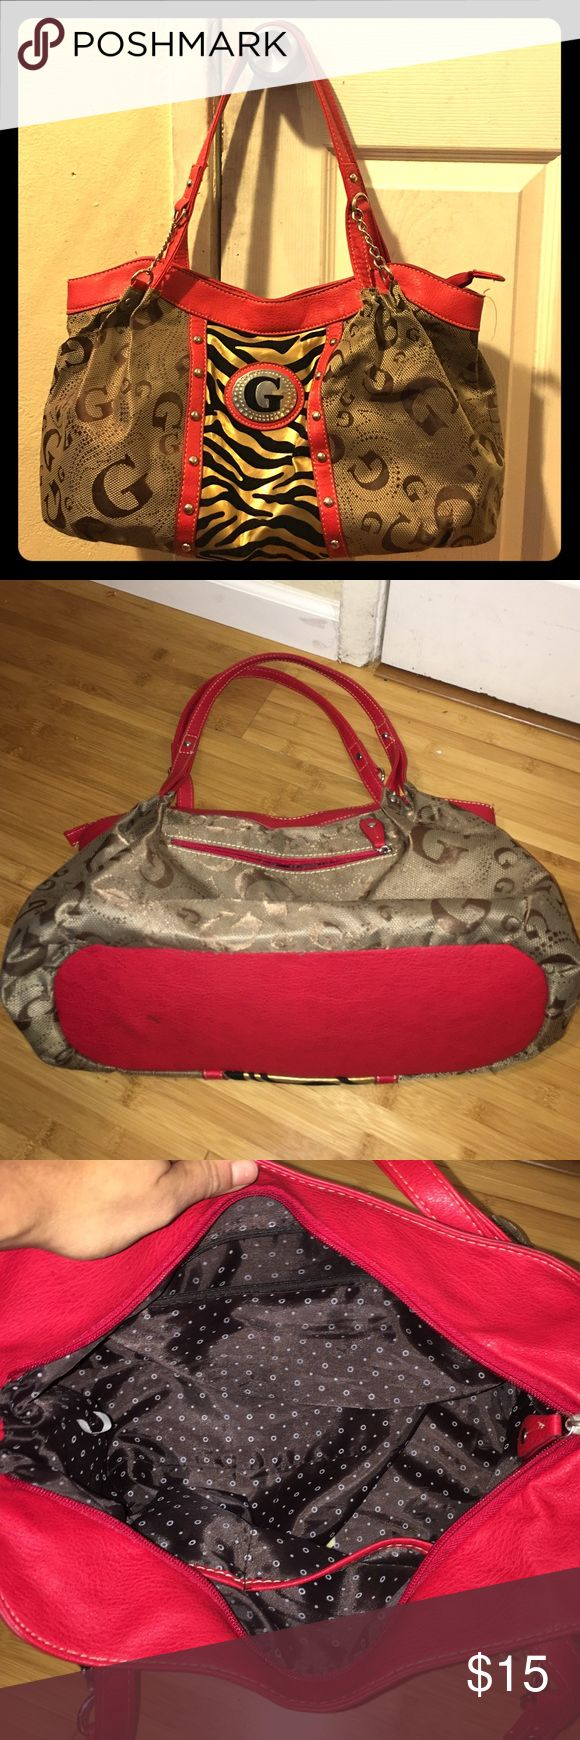 Beautiful large size bag Really beautiful faux leather bag. Letter G is made with metal and surround is velvet leopard print. Inside is nylon and very clean. Only one flaw that showed in the picture but inside the strap so when you wear it, it doesn't show. Overall very good condition. Bags Shoulder Bags